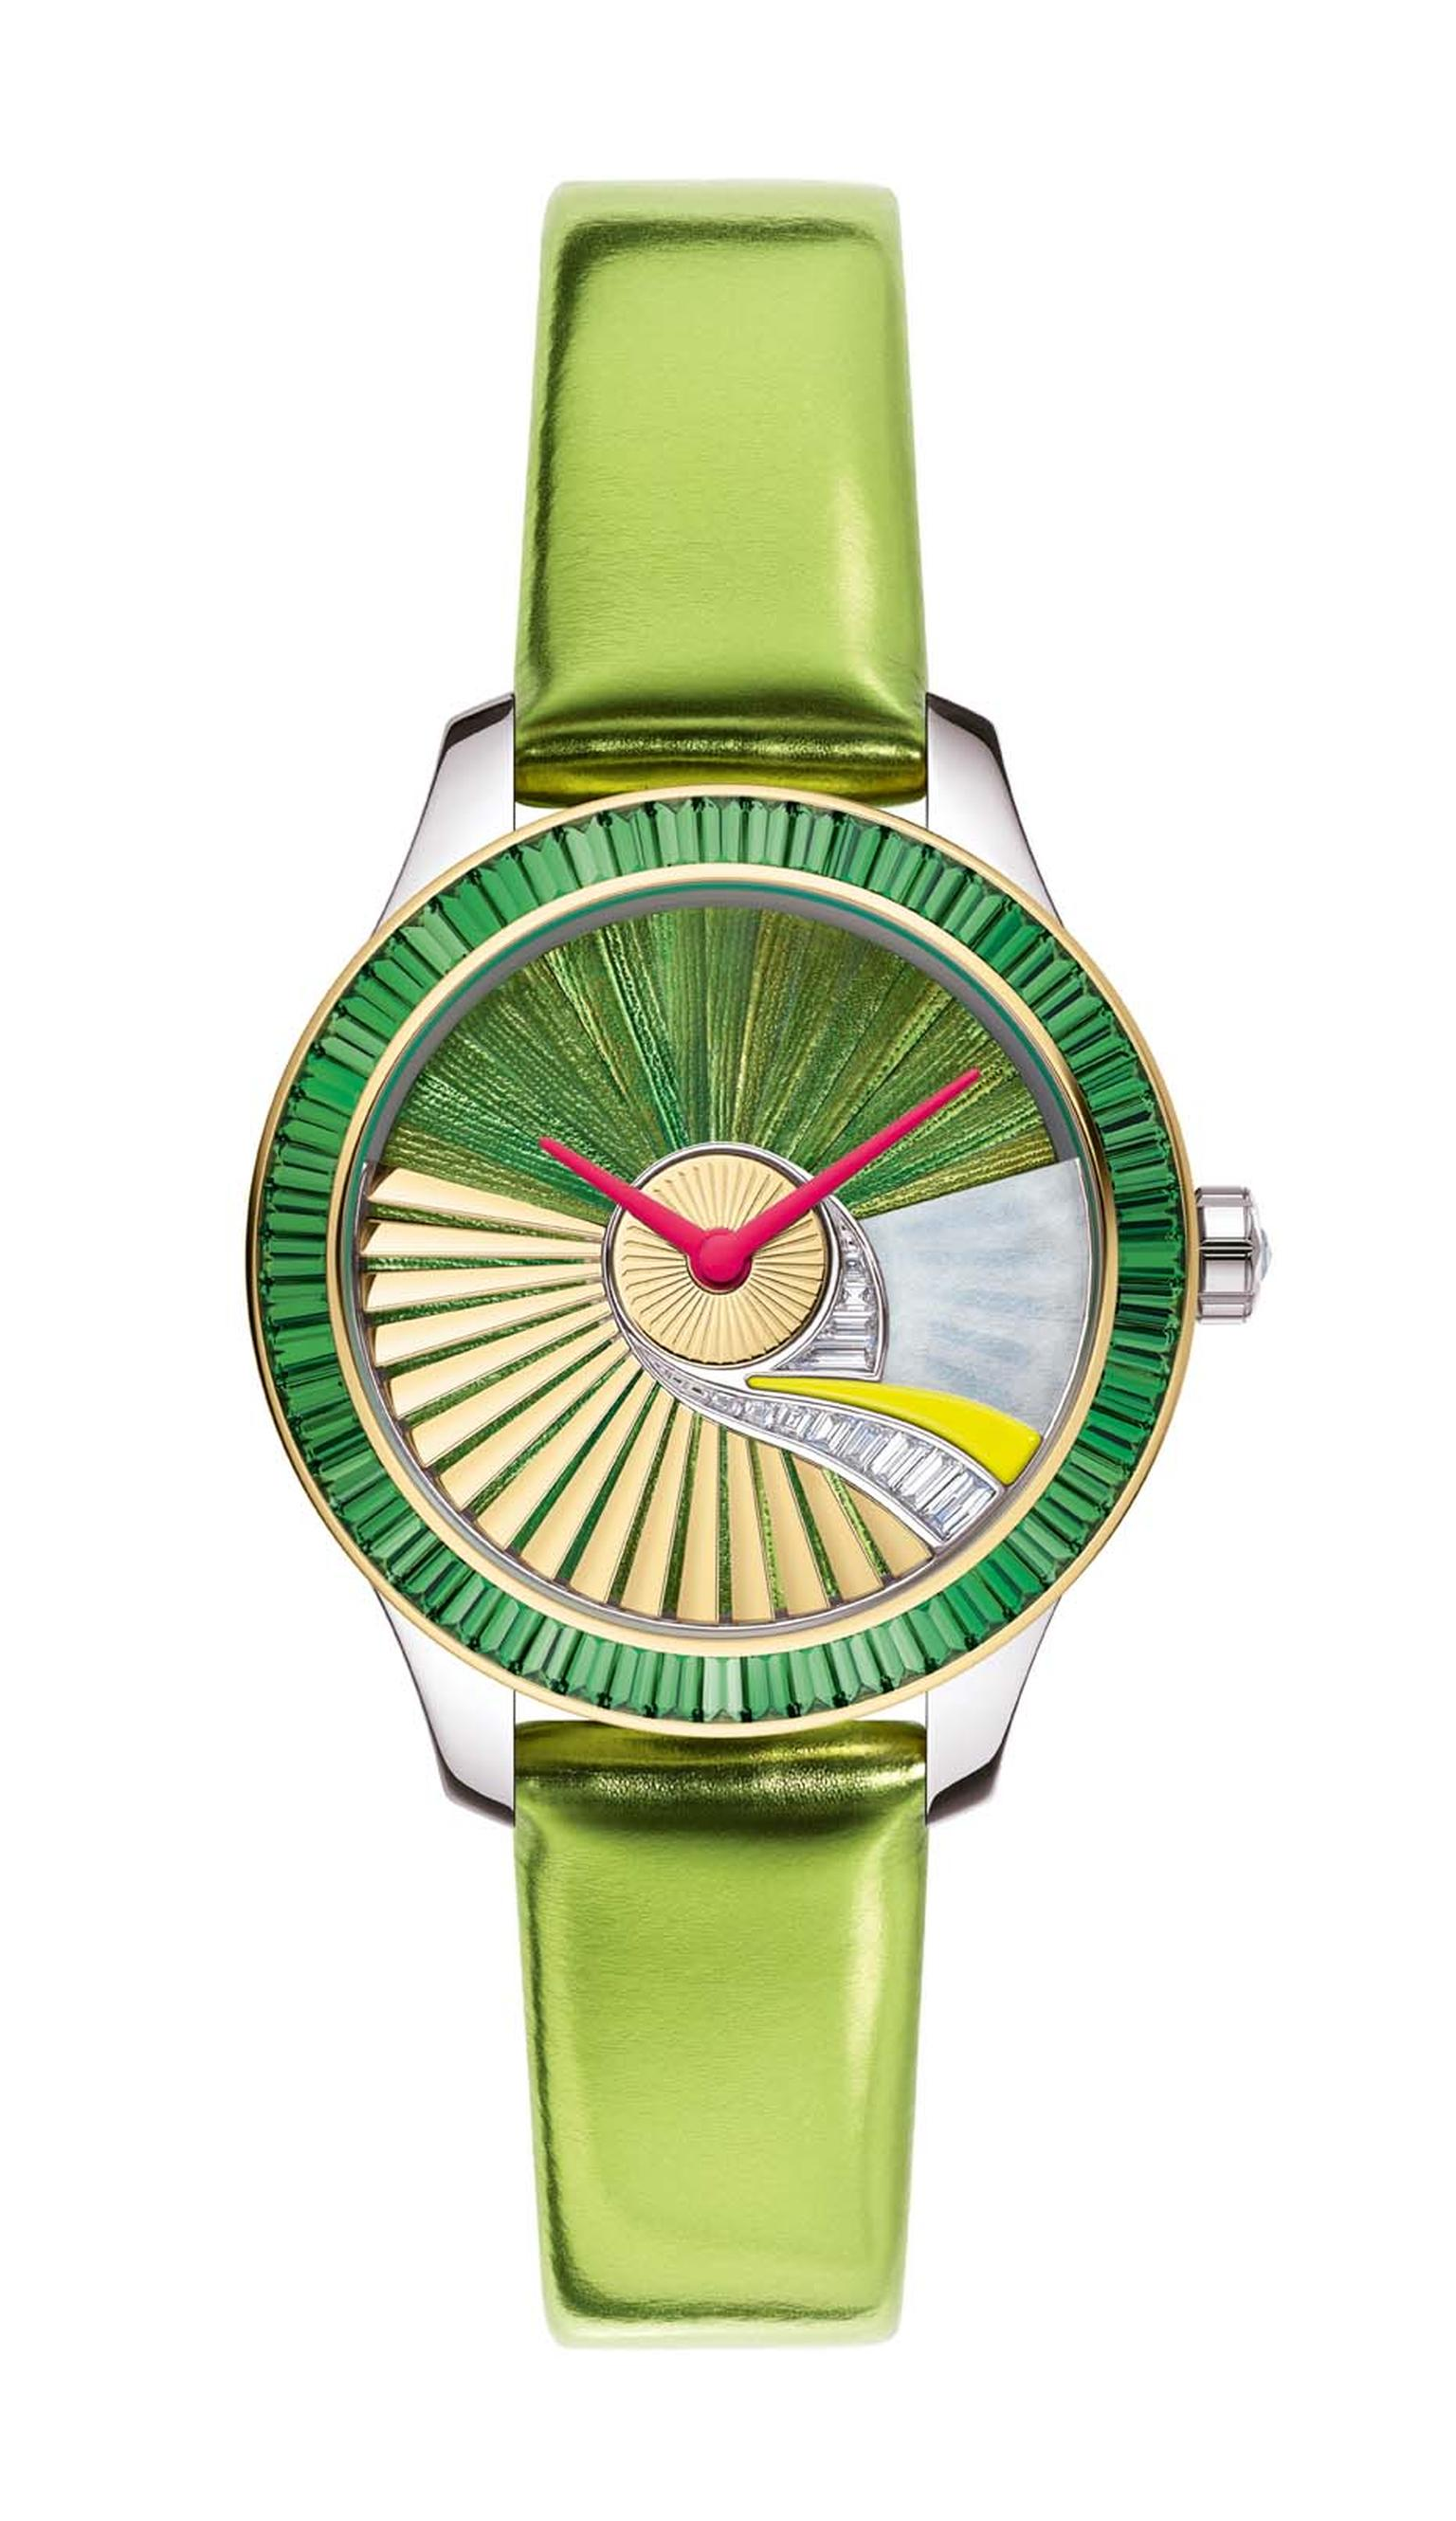 Dior VIII Grand Bal Pièce Unique Envol no. 5 watch glows with a natural green iridescence thanks to the use of scarab beetle wings set into the dial using marquetry. All the Dior VIII Grand Bal family have the oscillating weight - or rotor - of the moveme